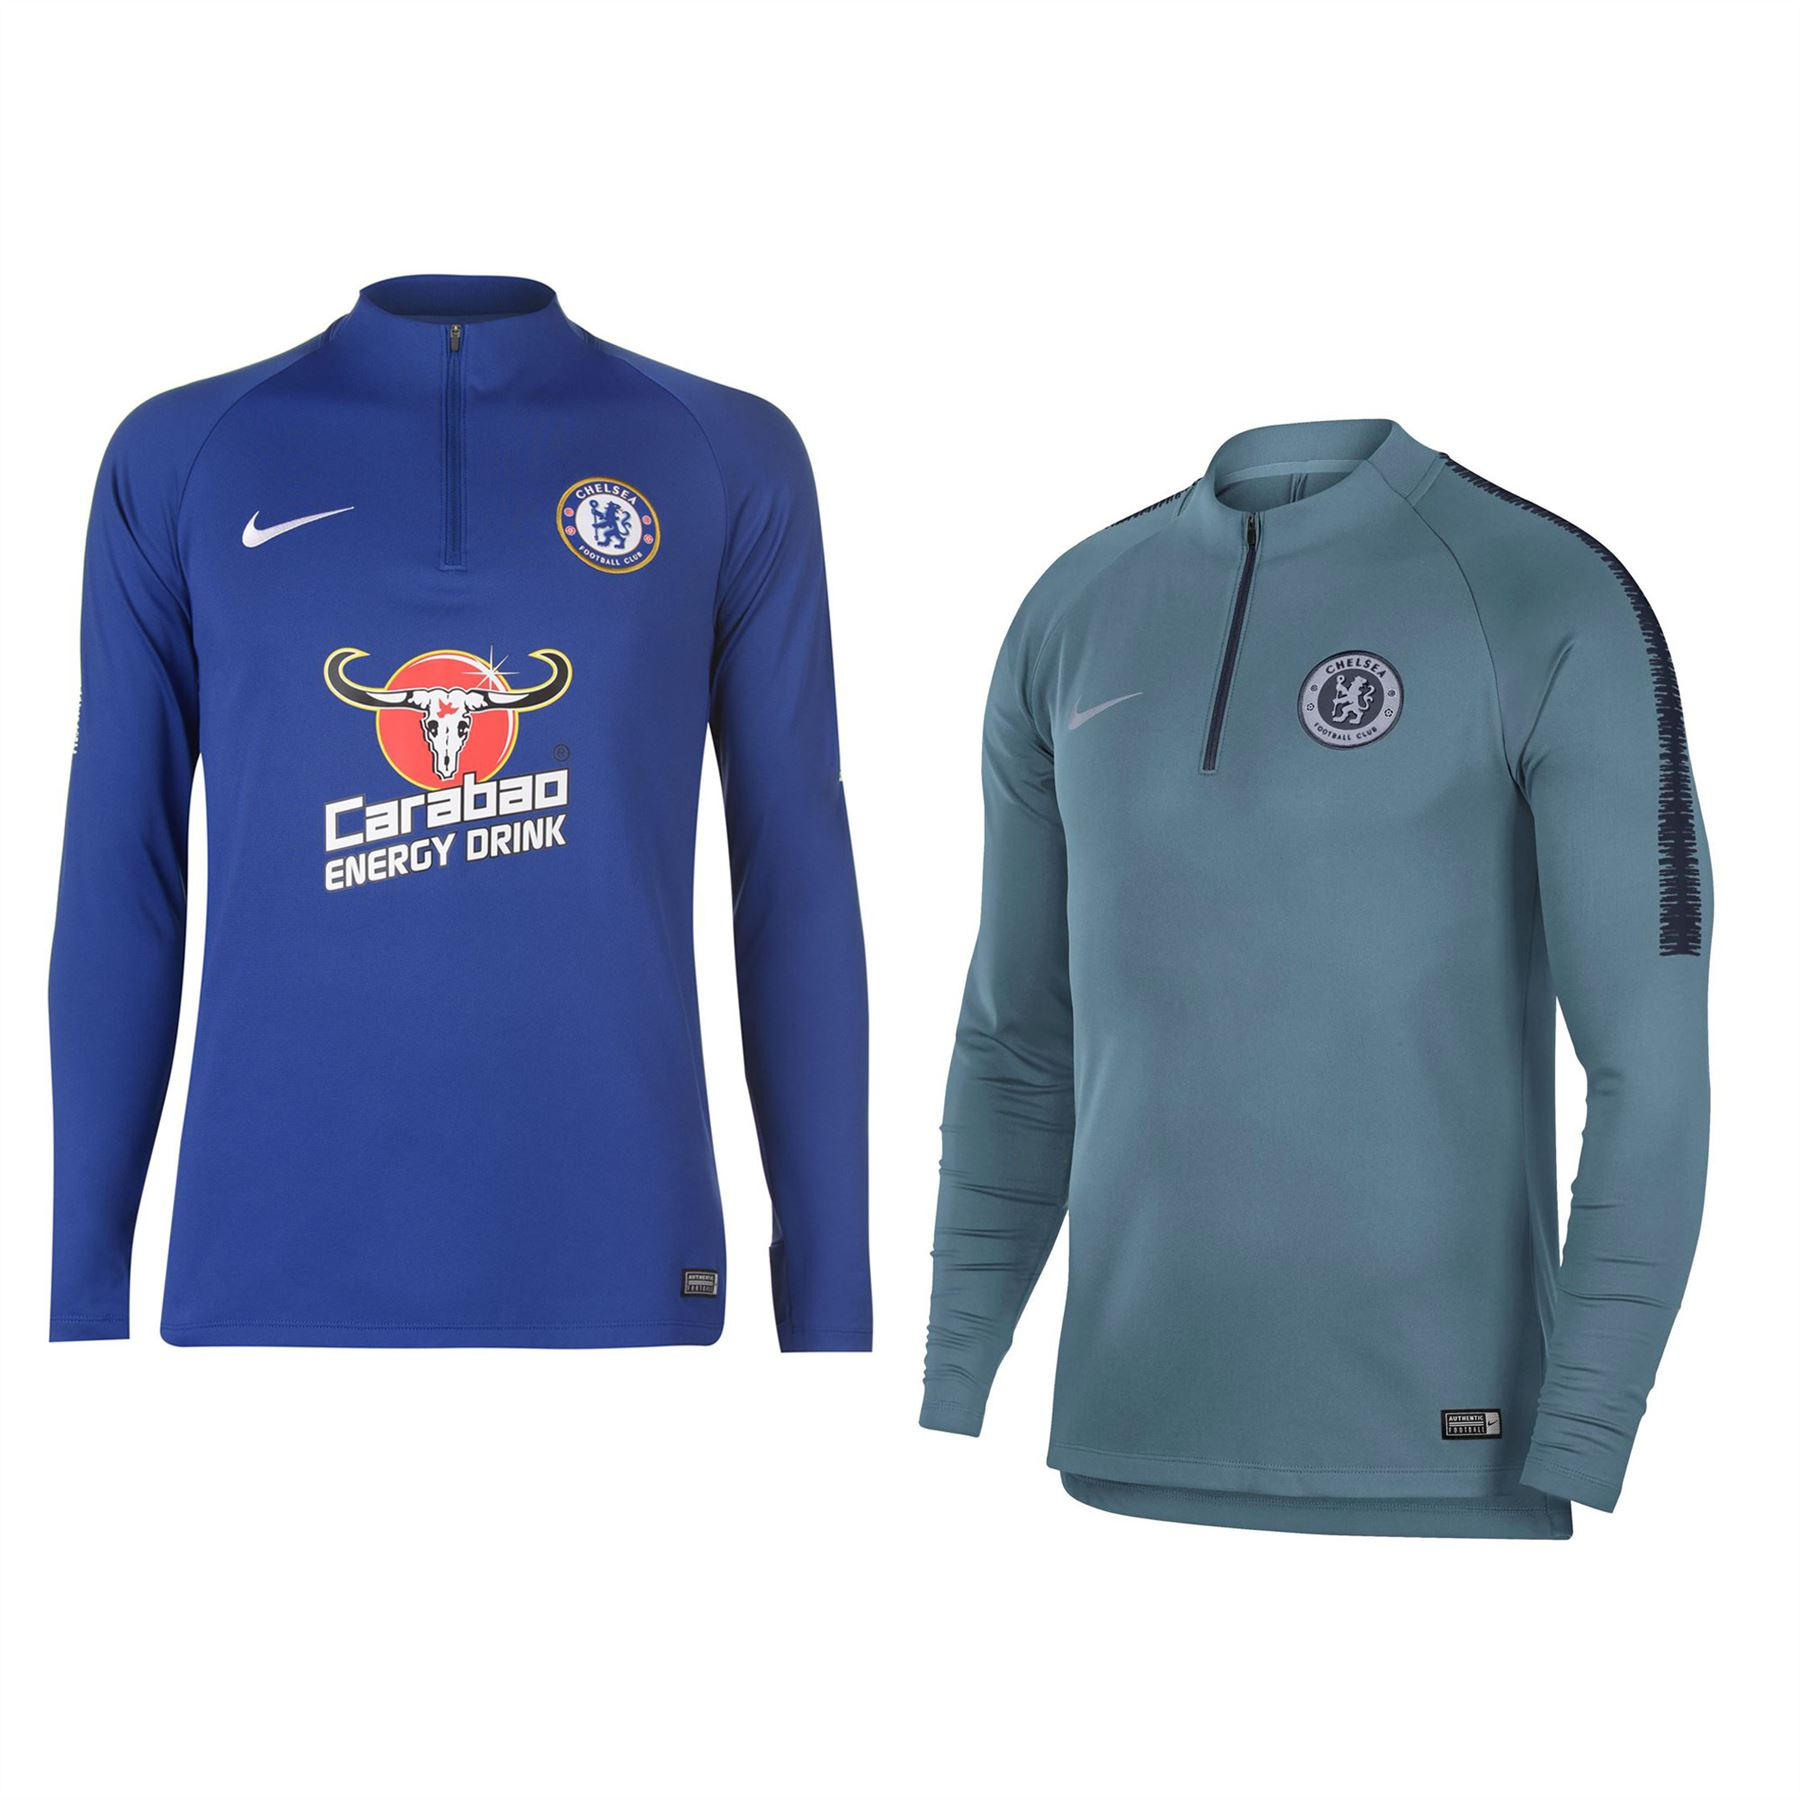 half off fcfda 0ac04 Details about Nike Chelsea Squad Drill Top 2018 2019 Mens Football Soccer  Sweatshirt